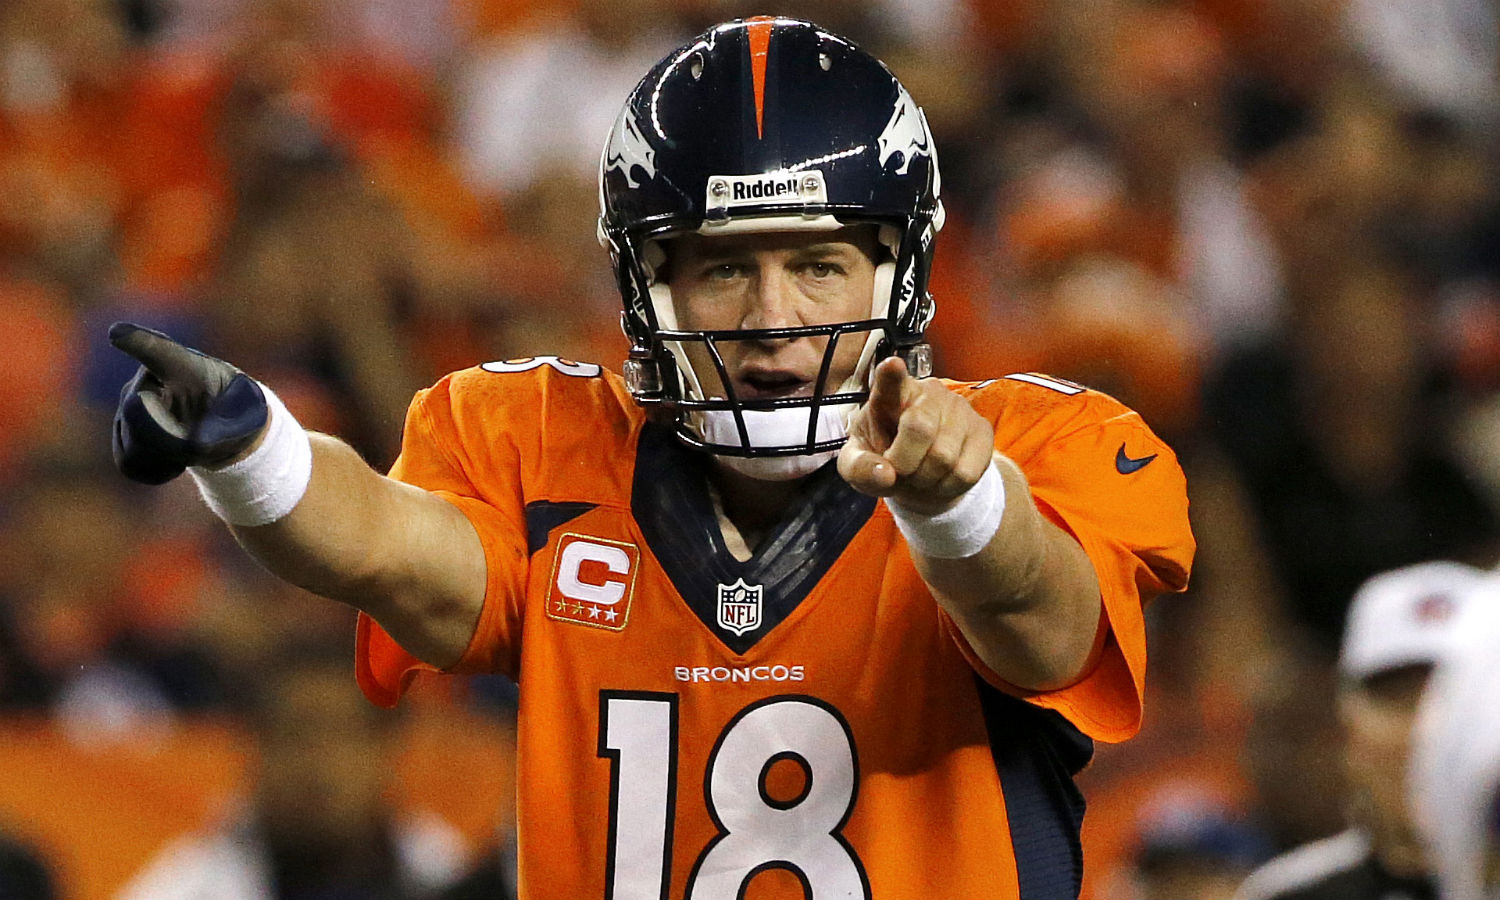 Peyton-Manning-18-calls-a-play-at-the-line-of-scrimmage-during-the-first-half-of-an-NFL-football-game-against-the-Baltimore-Ravens-in-Denver.-AP-Photo